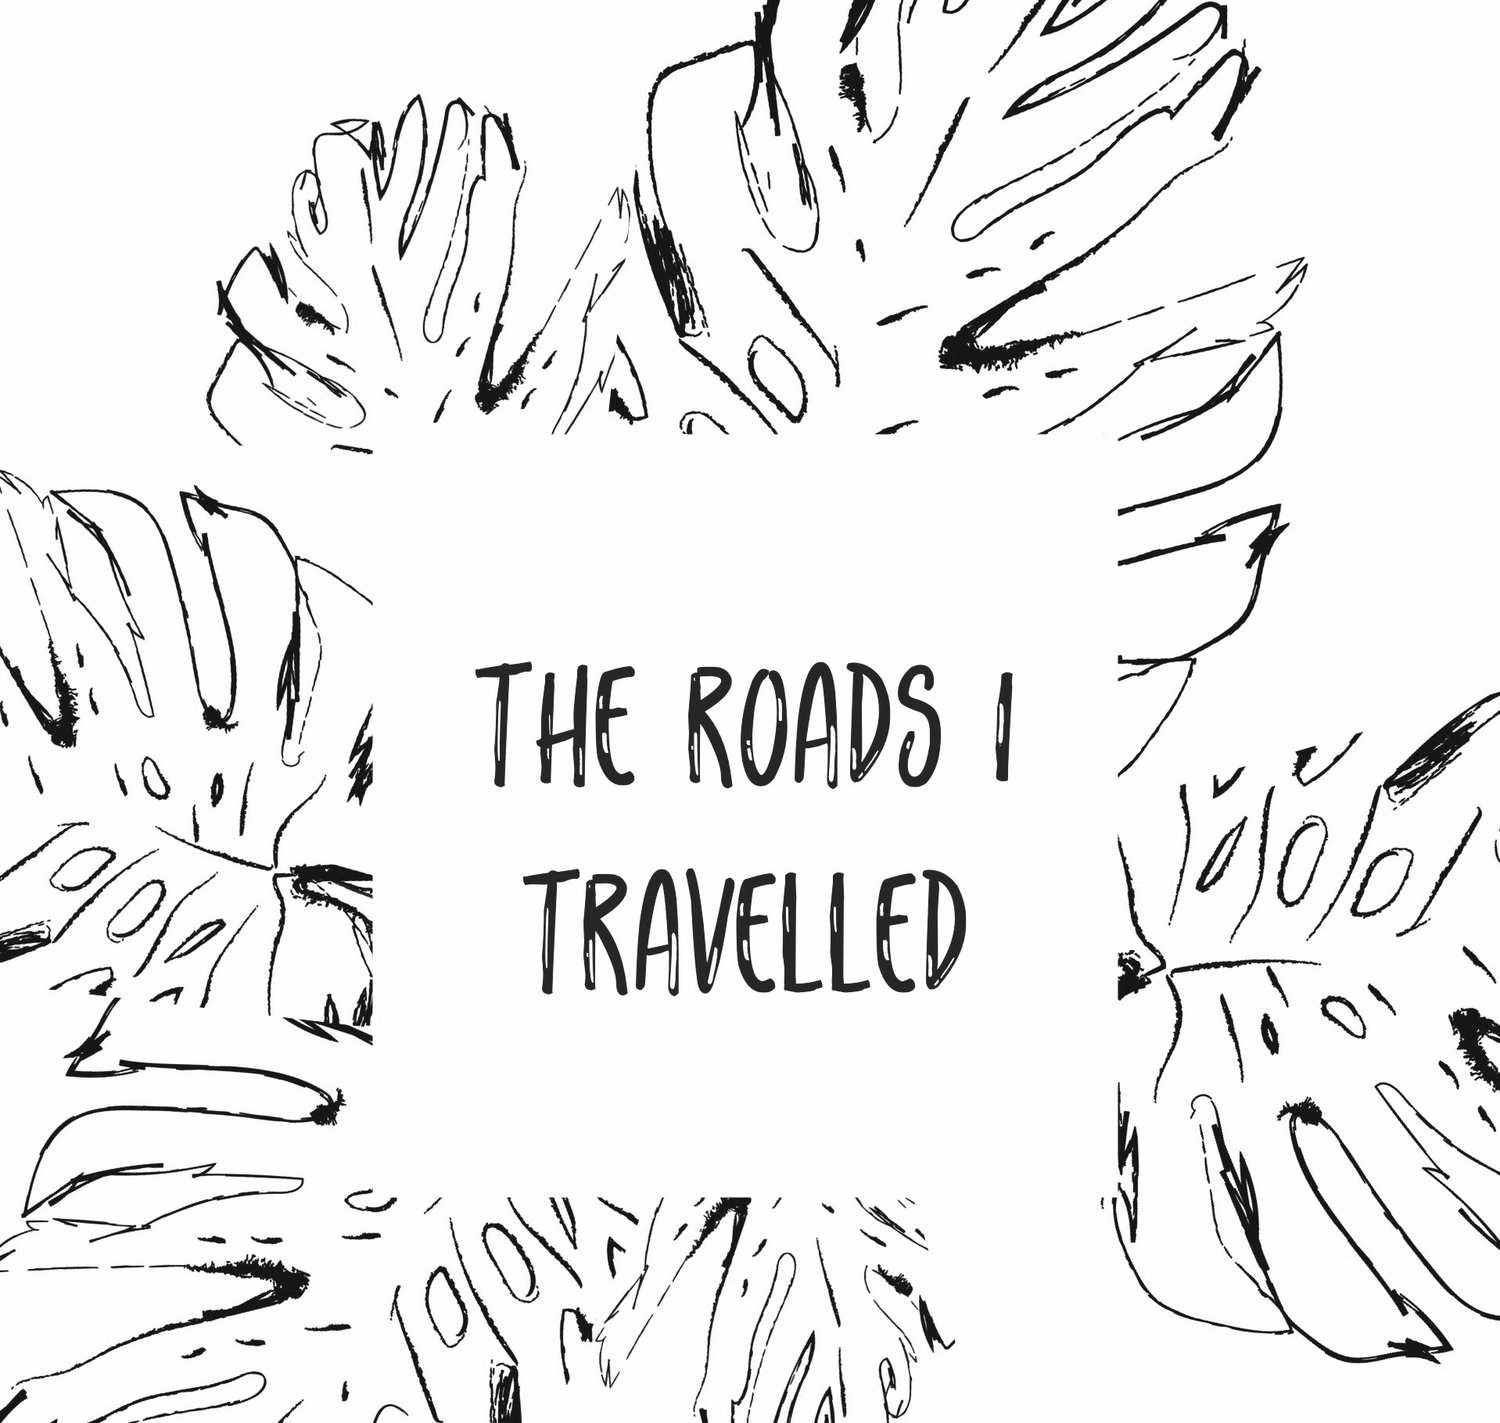 THE ROADS I TRAVELLED